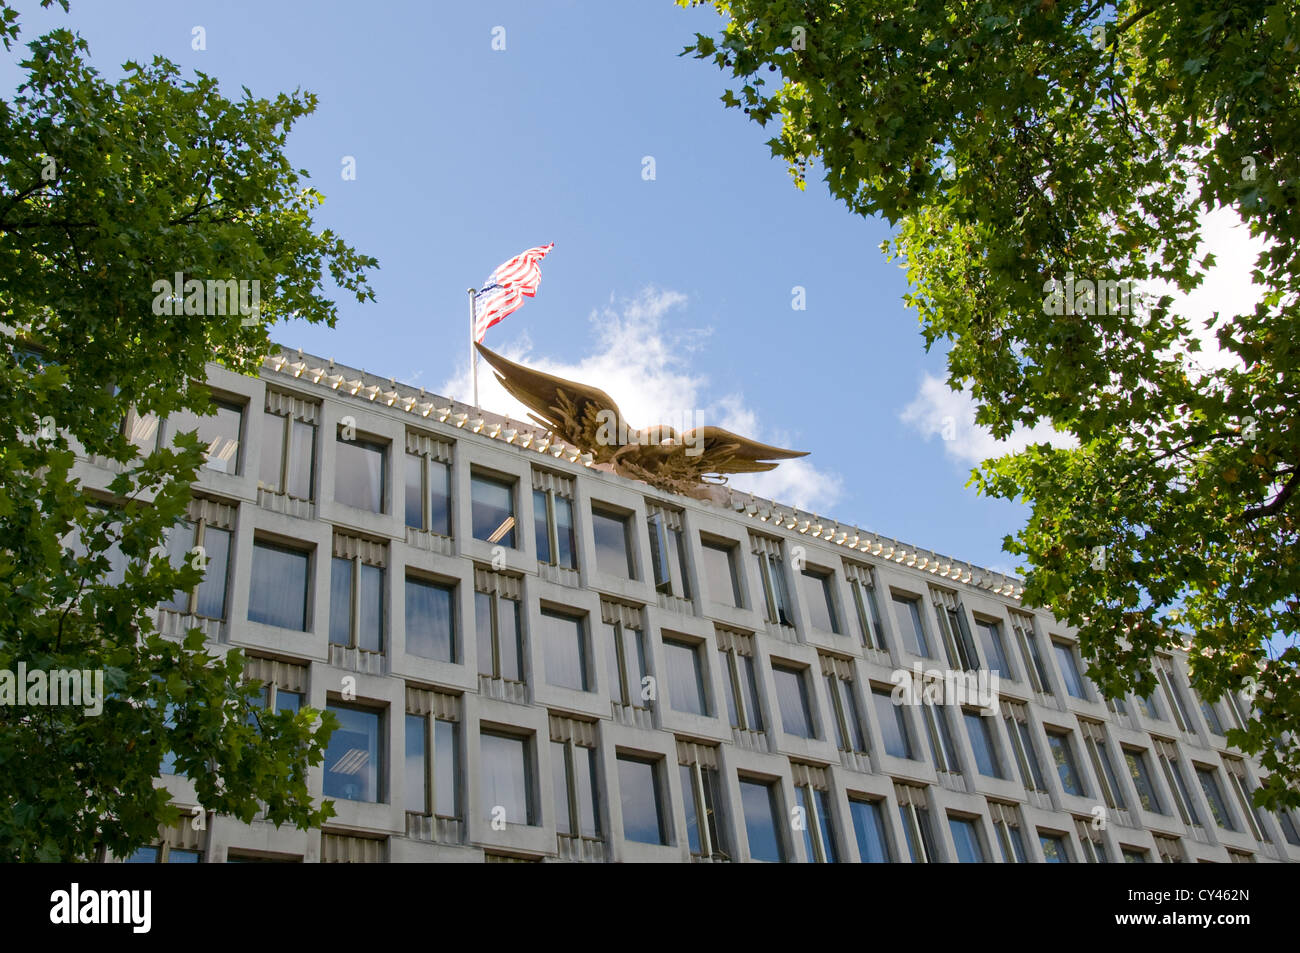 US Embassy in London - Stock Image